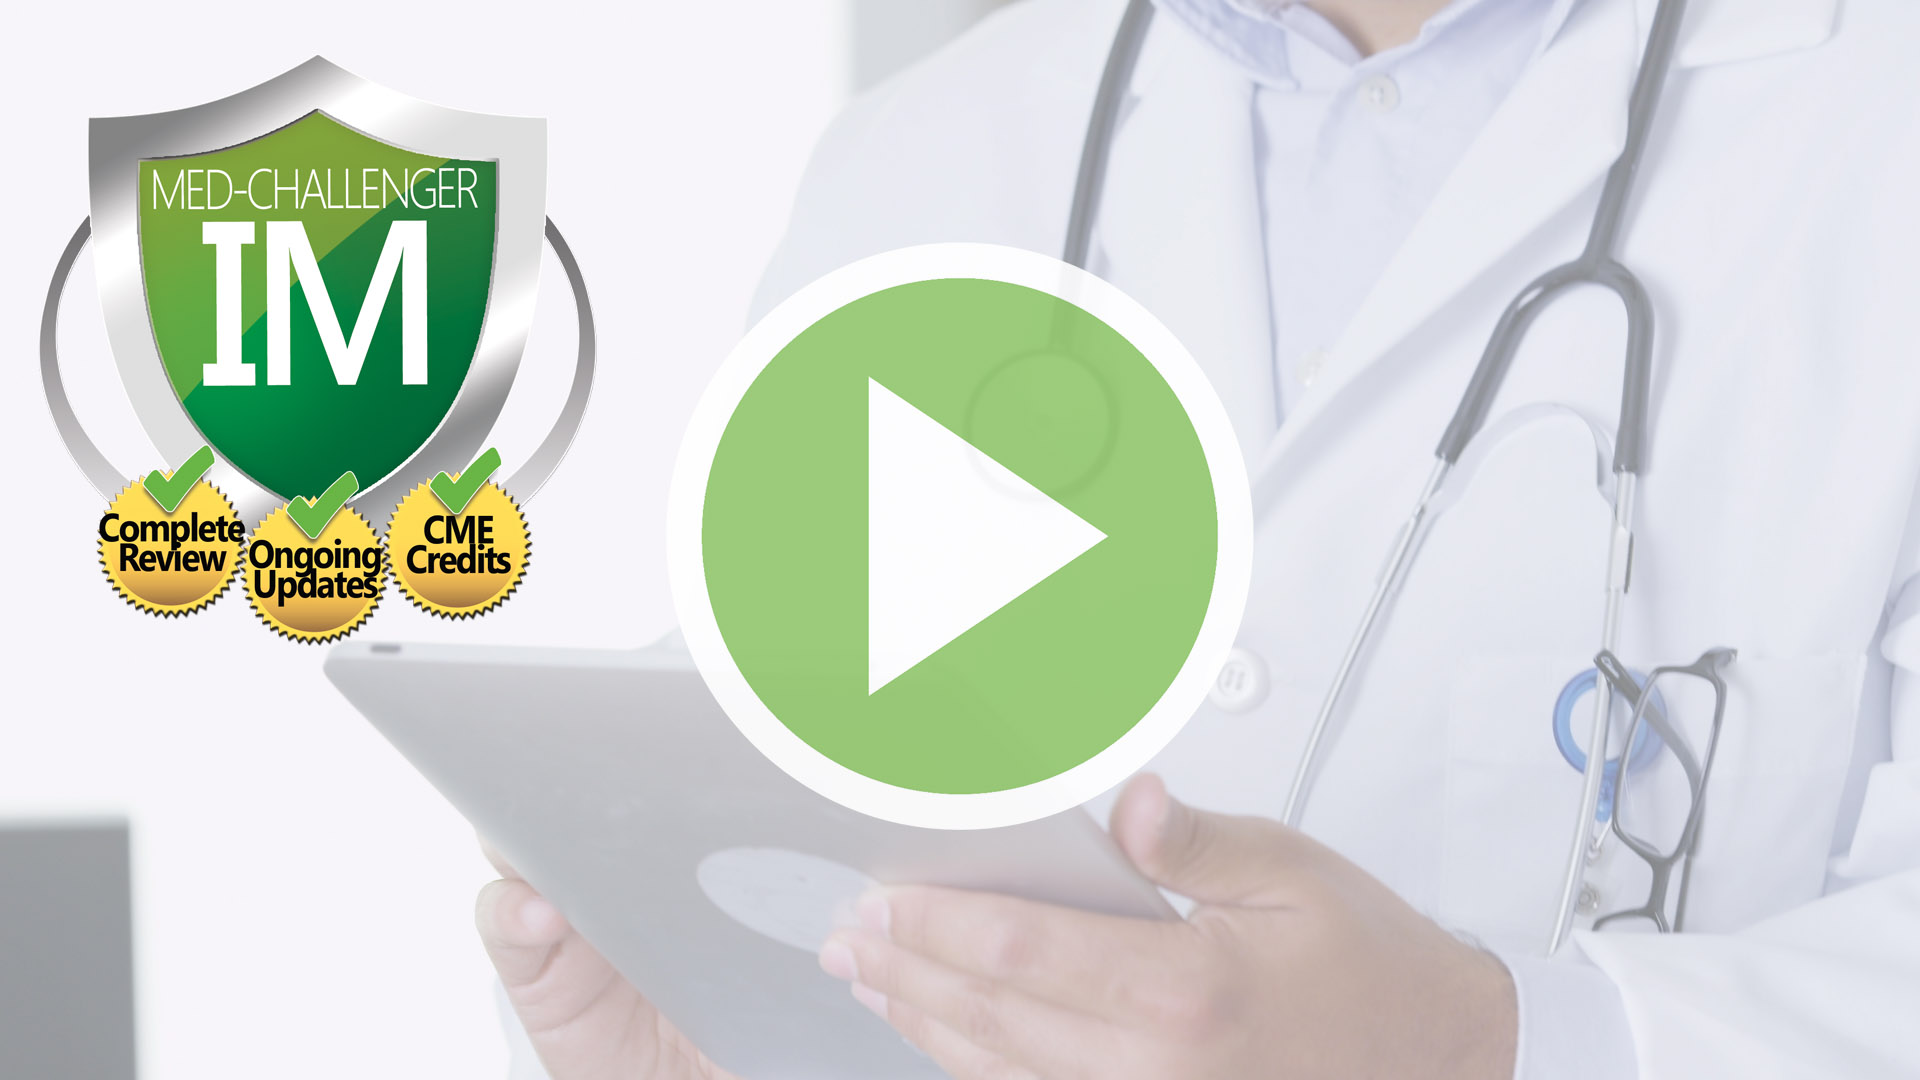 Med-Challenger Internal Medicine Board Review, internal medicine MOC, internal medicine MOC points, ABIM MOC requirements, MOC points, 2019 ABIM